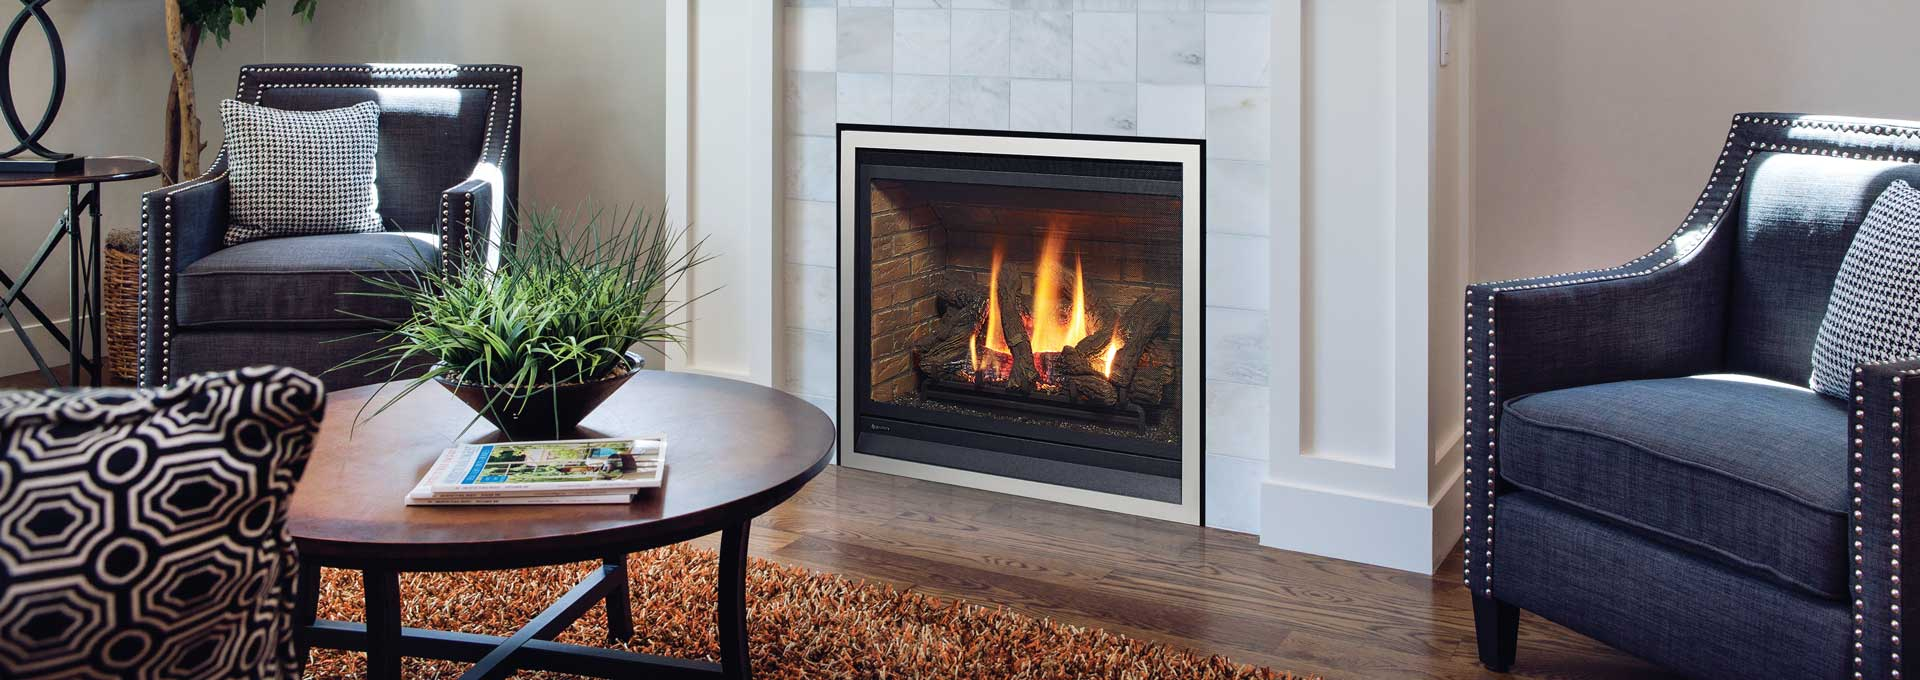 bellavista b36xte gas fireplace gas fireplaces regency